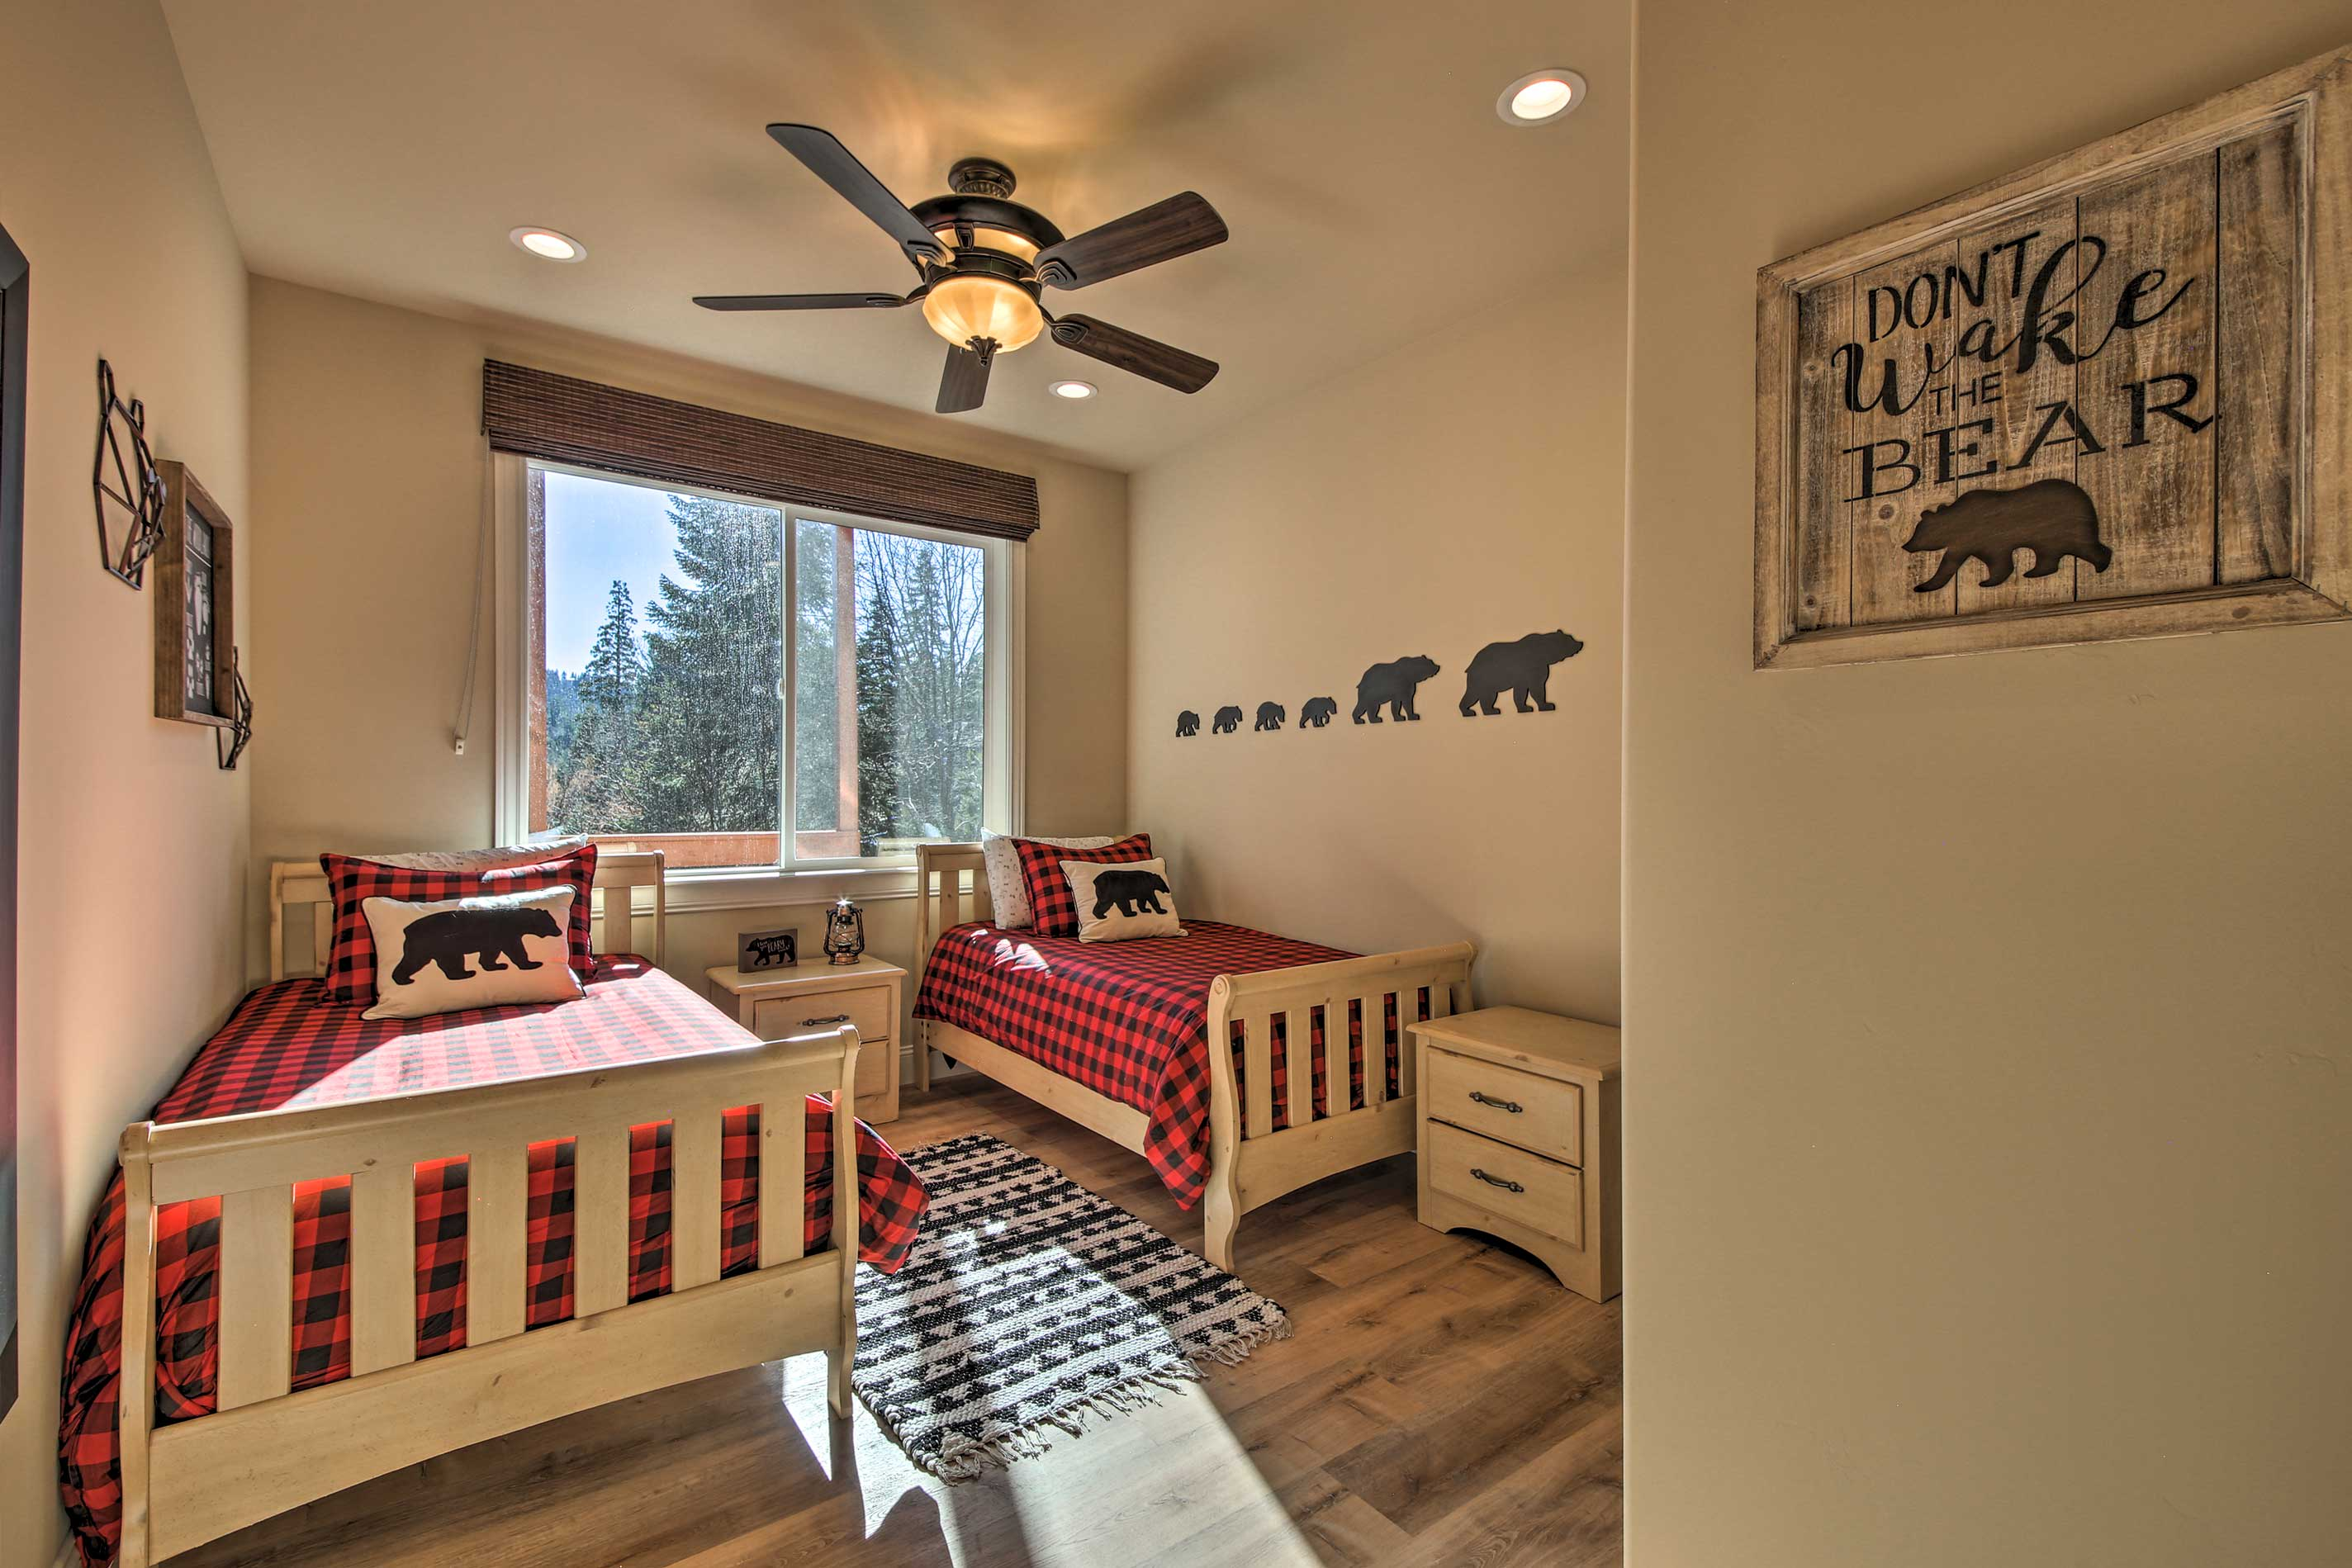 Two guests can share this cabin-like bedroom.